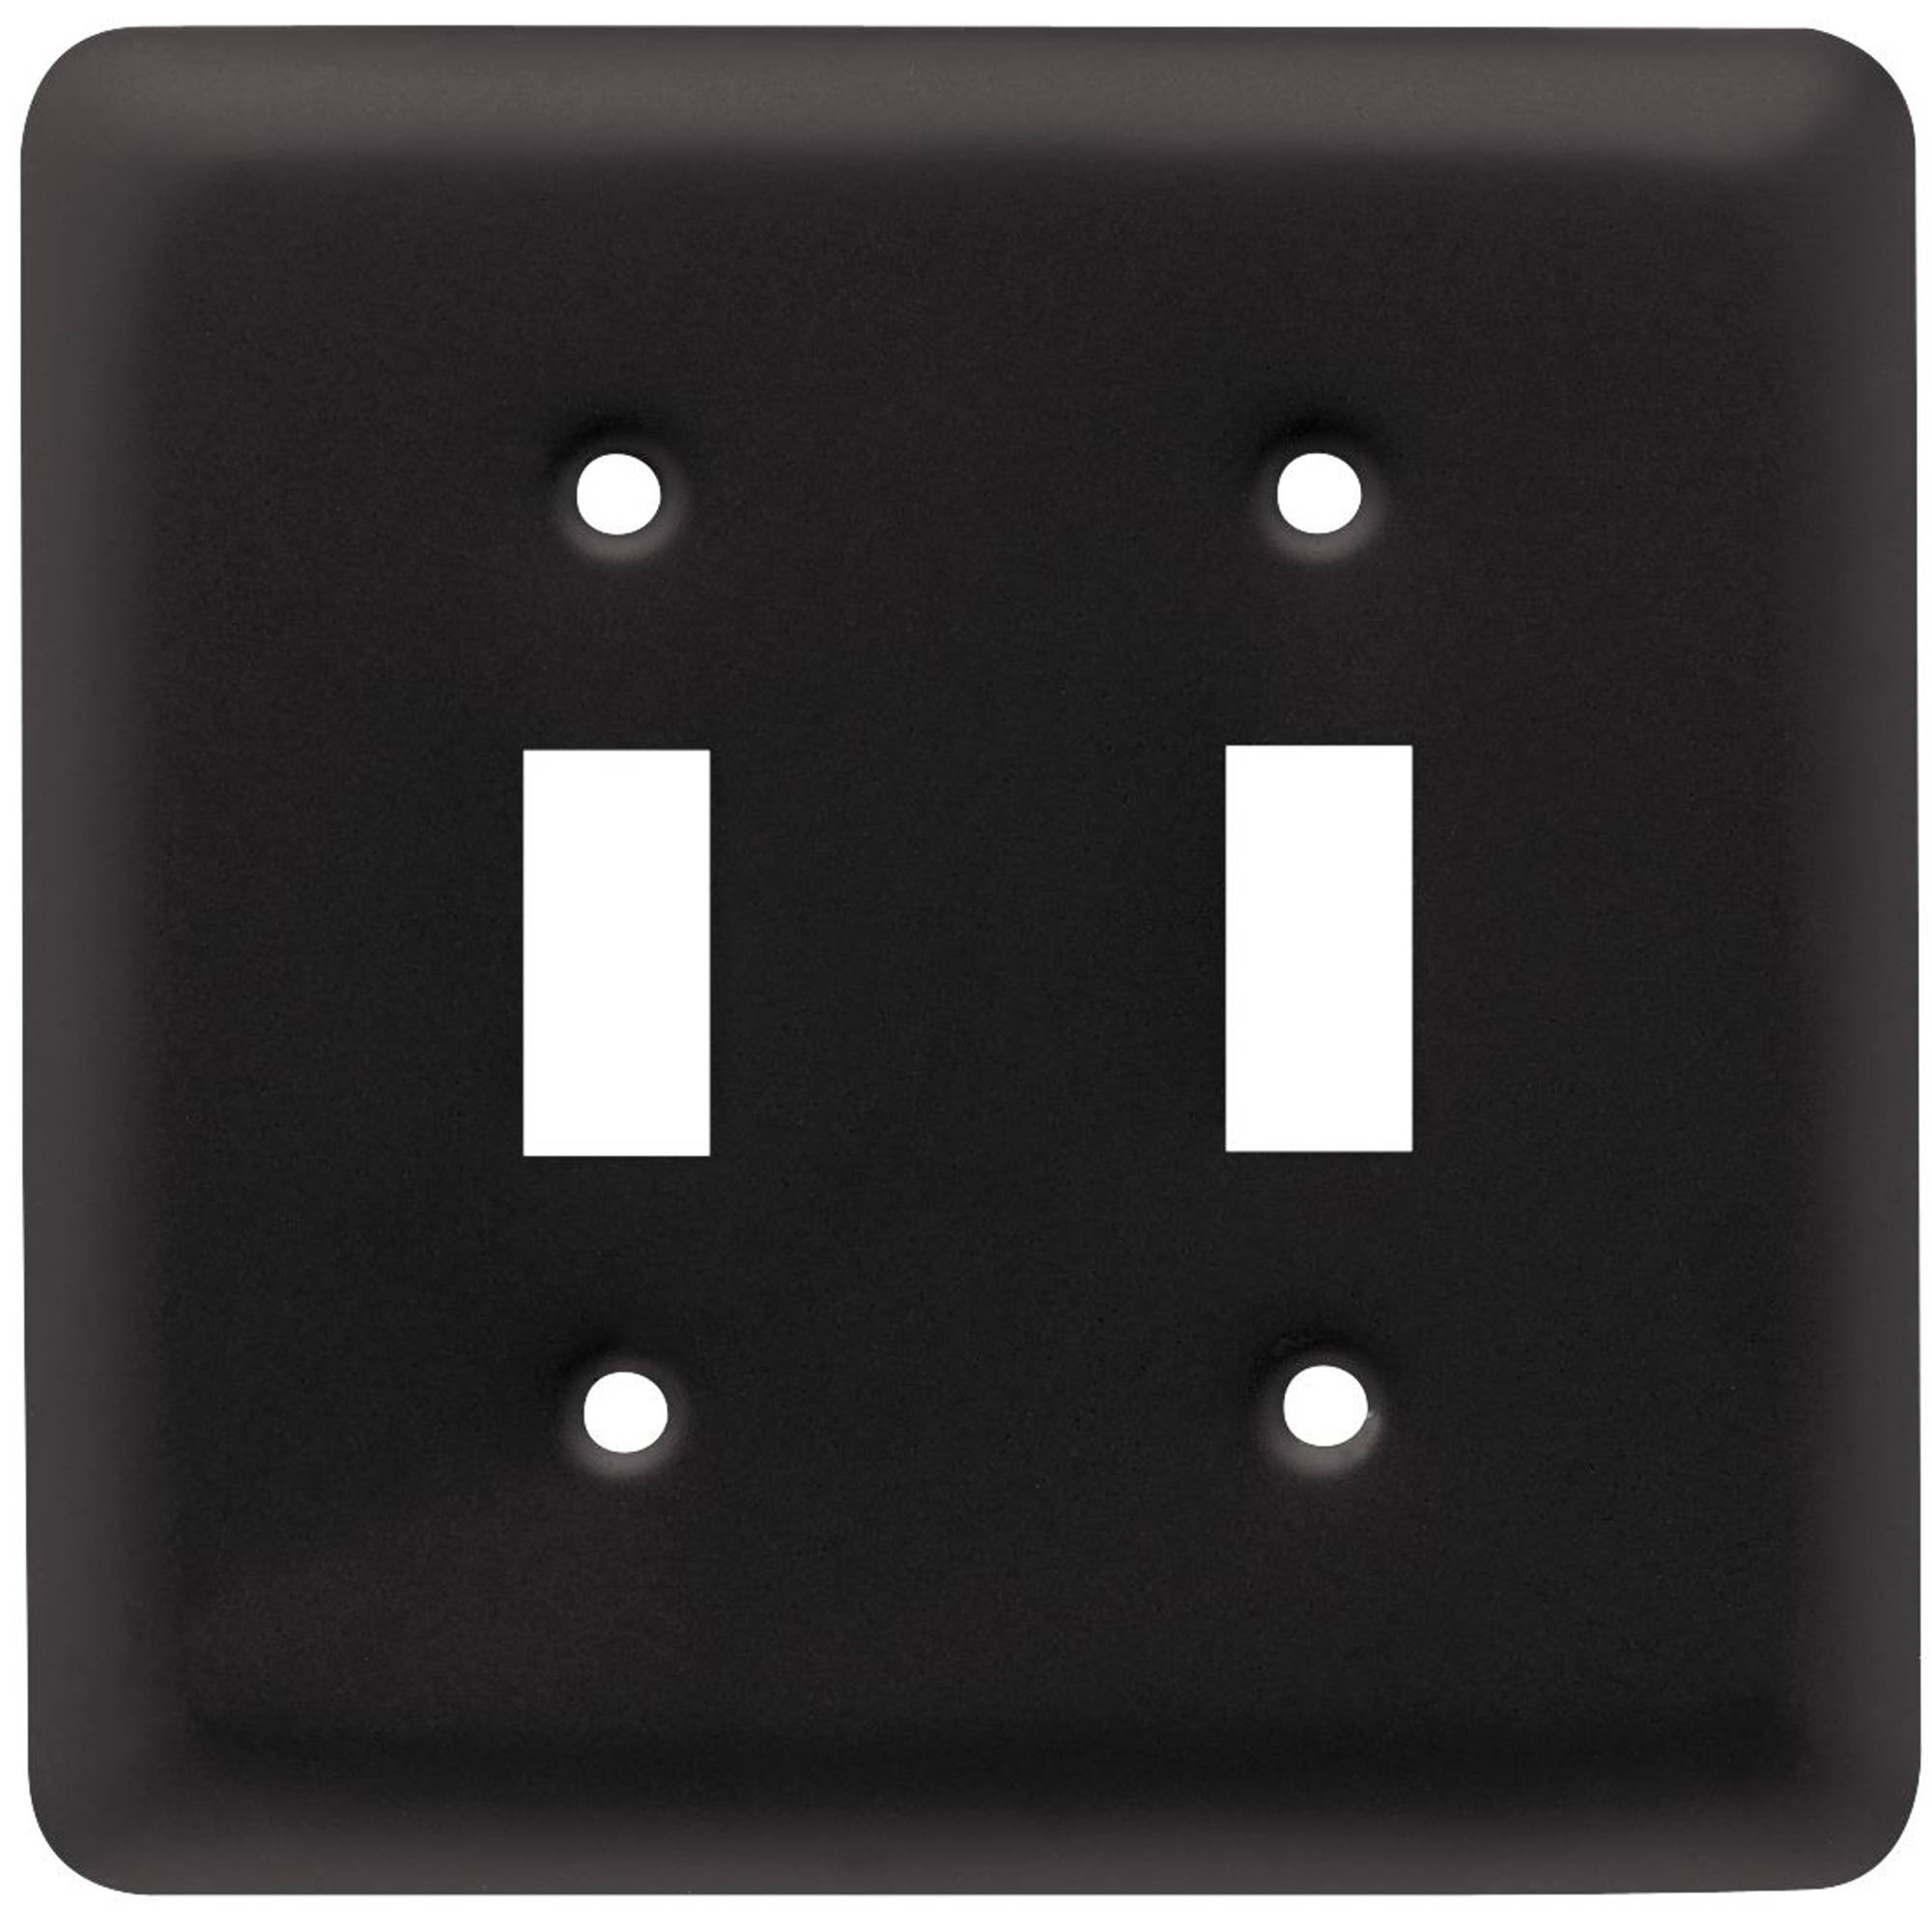 Franklin Brass Stamped Round Double Switch Wall Plate in Flat Black